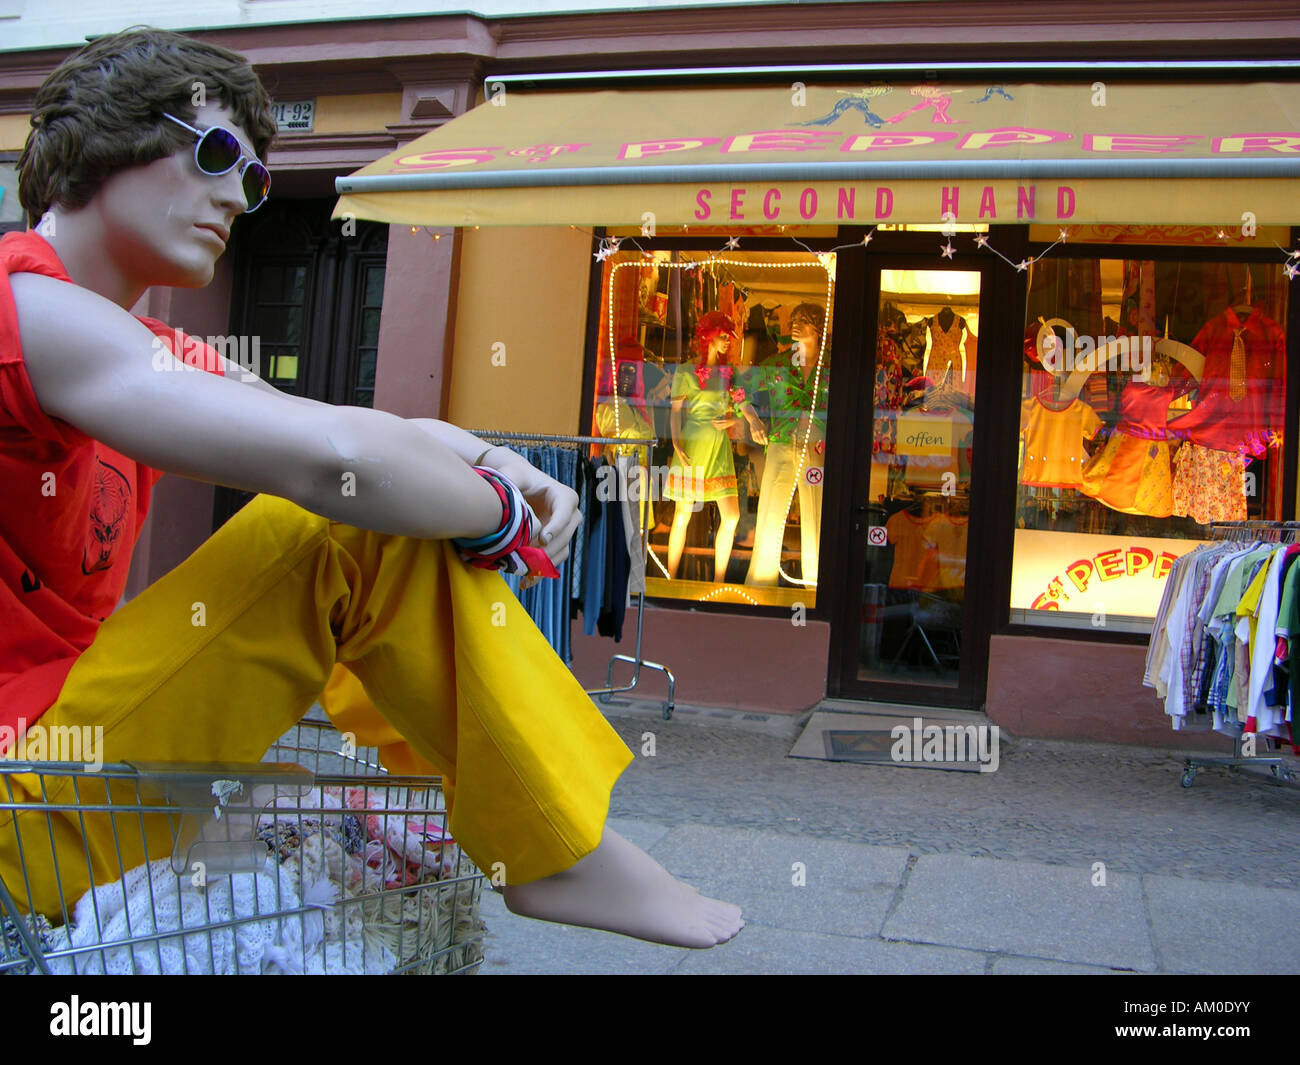 Second-hand shop for clothes, Prenzlauer Berg, Berlin, Germany - Stock Image